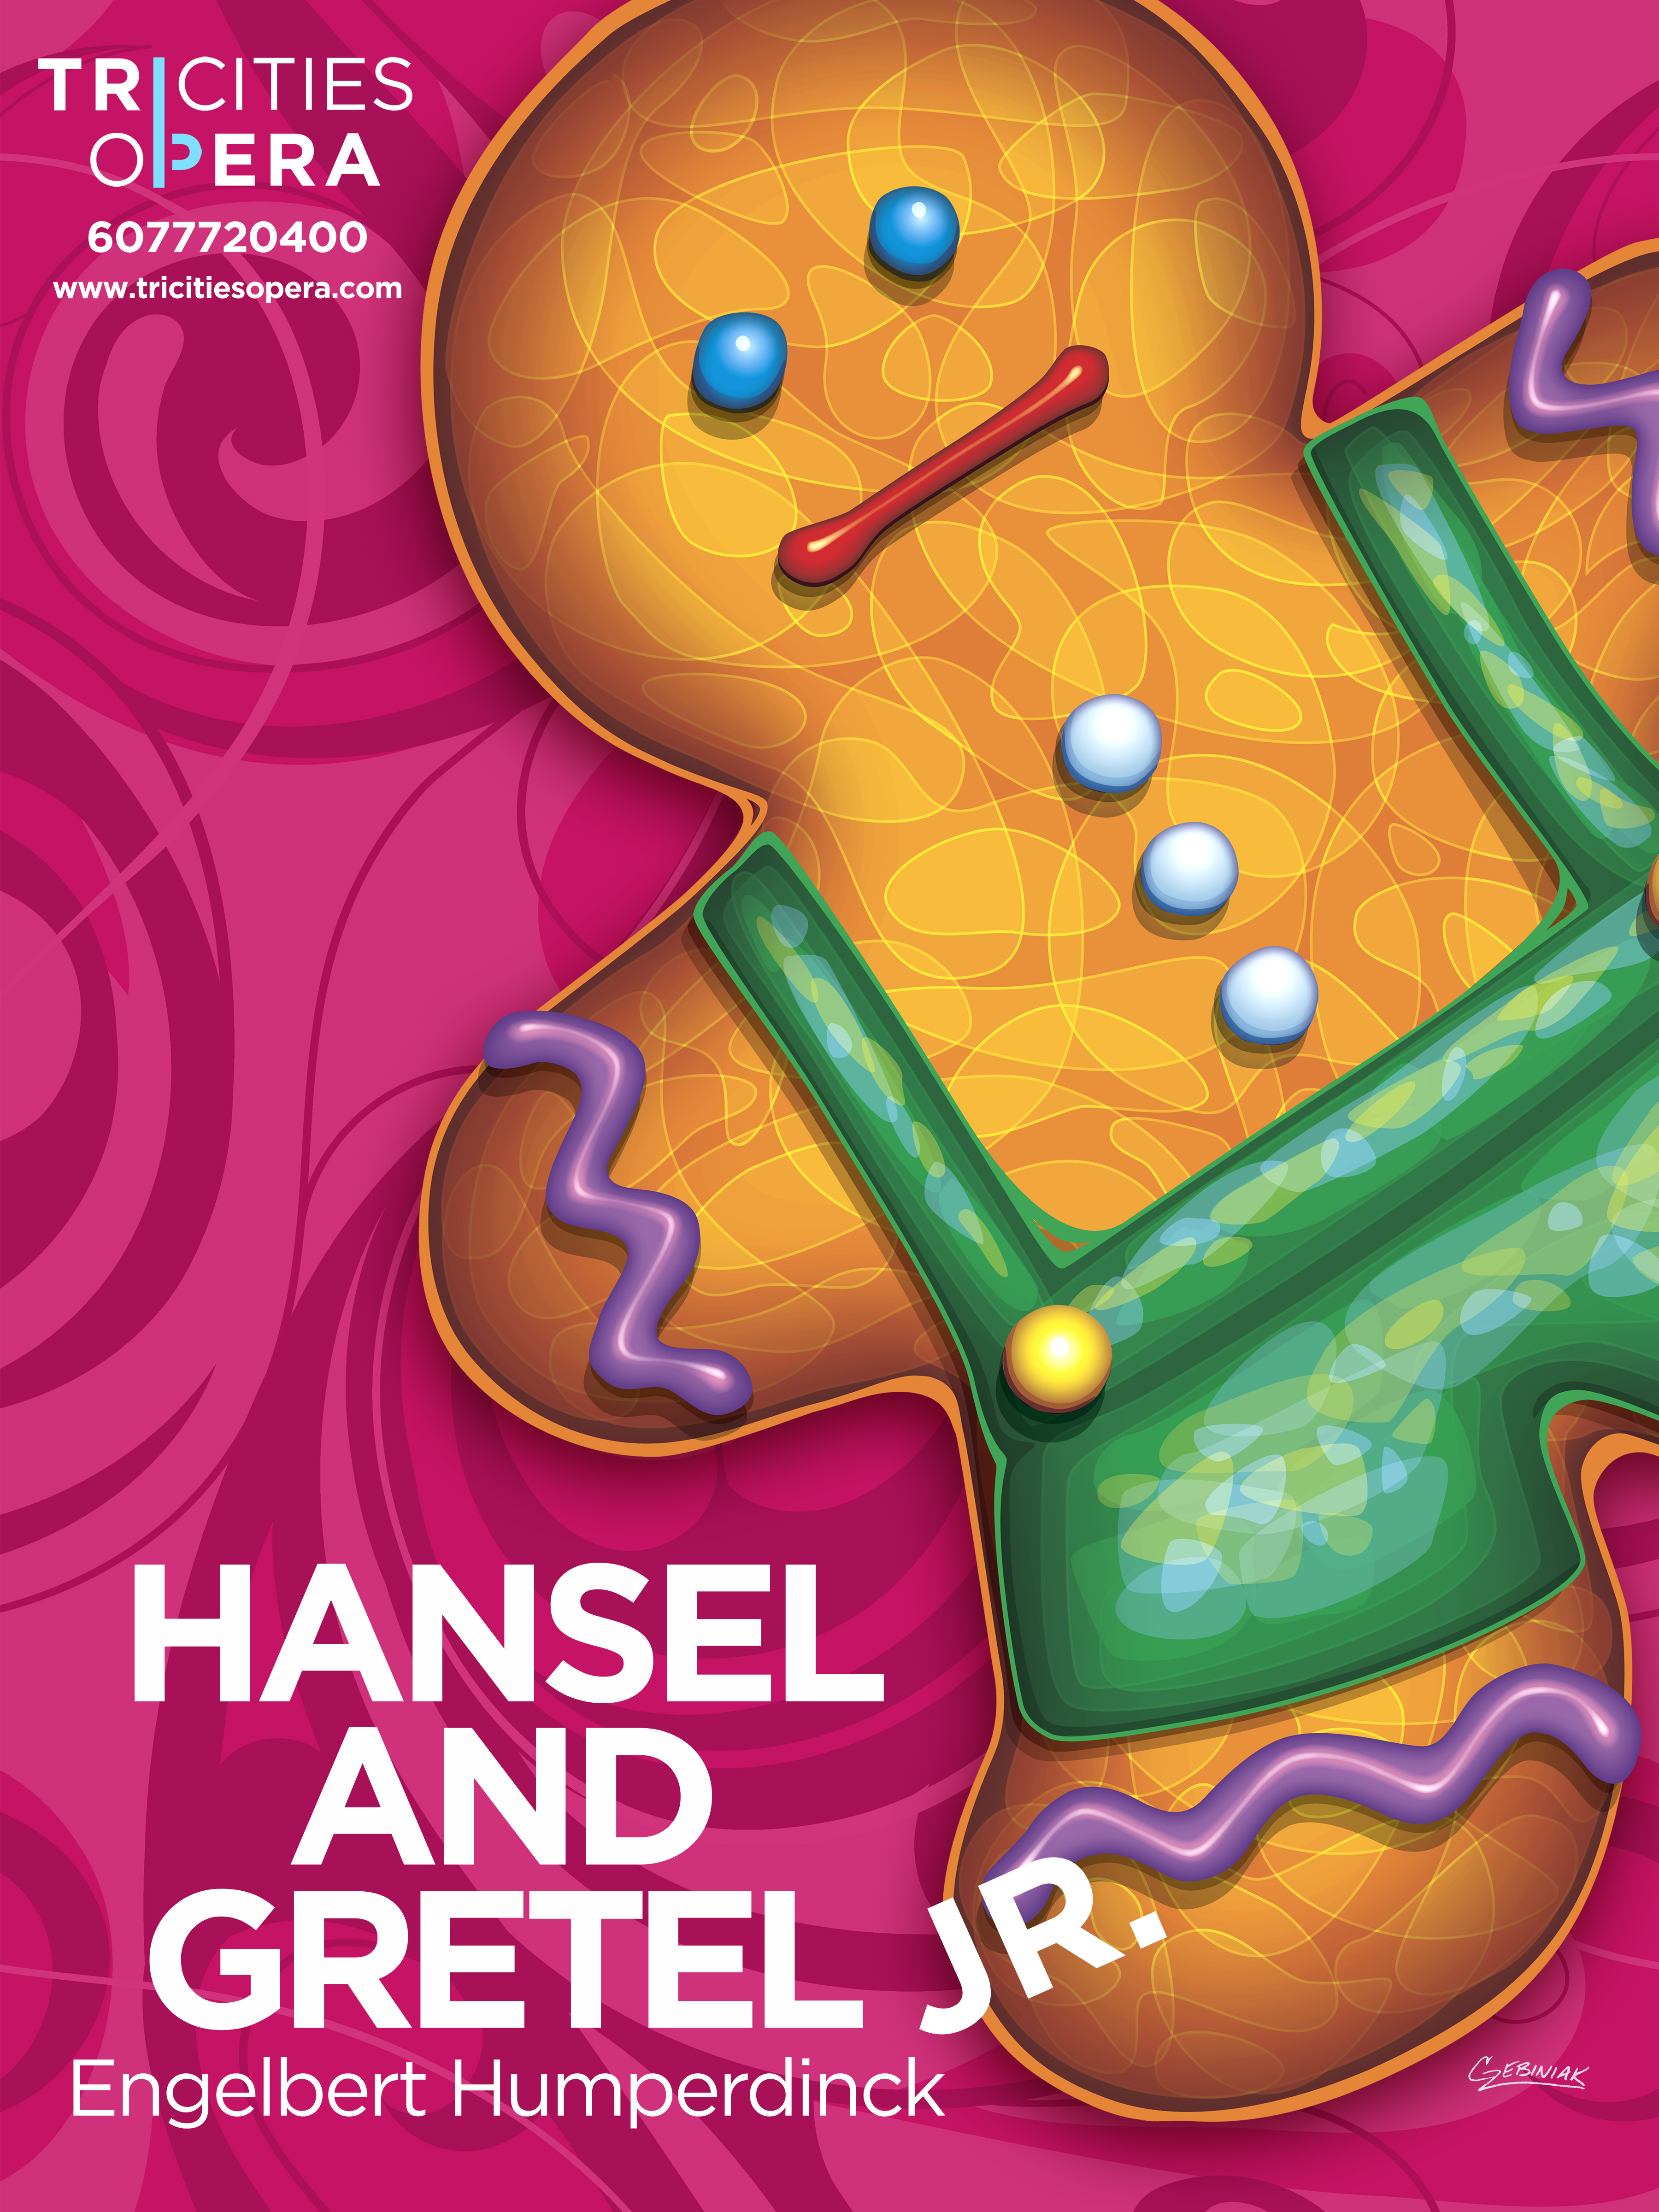 Hansel and Gretel Jr